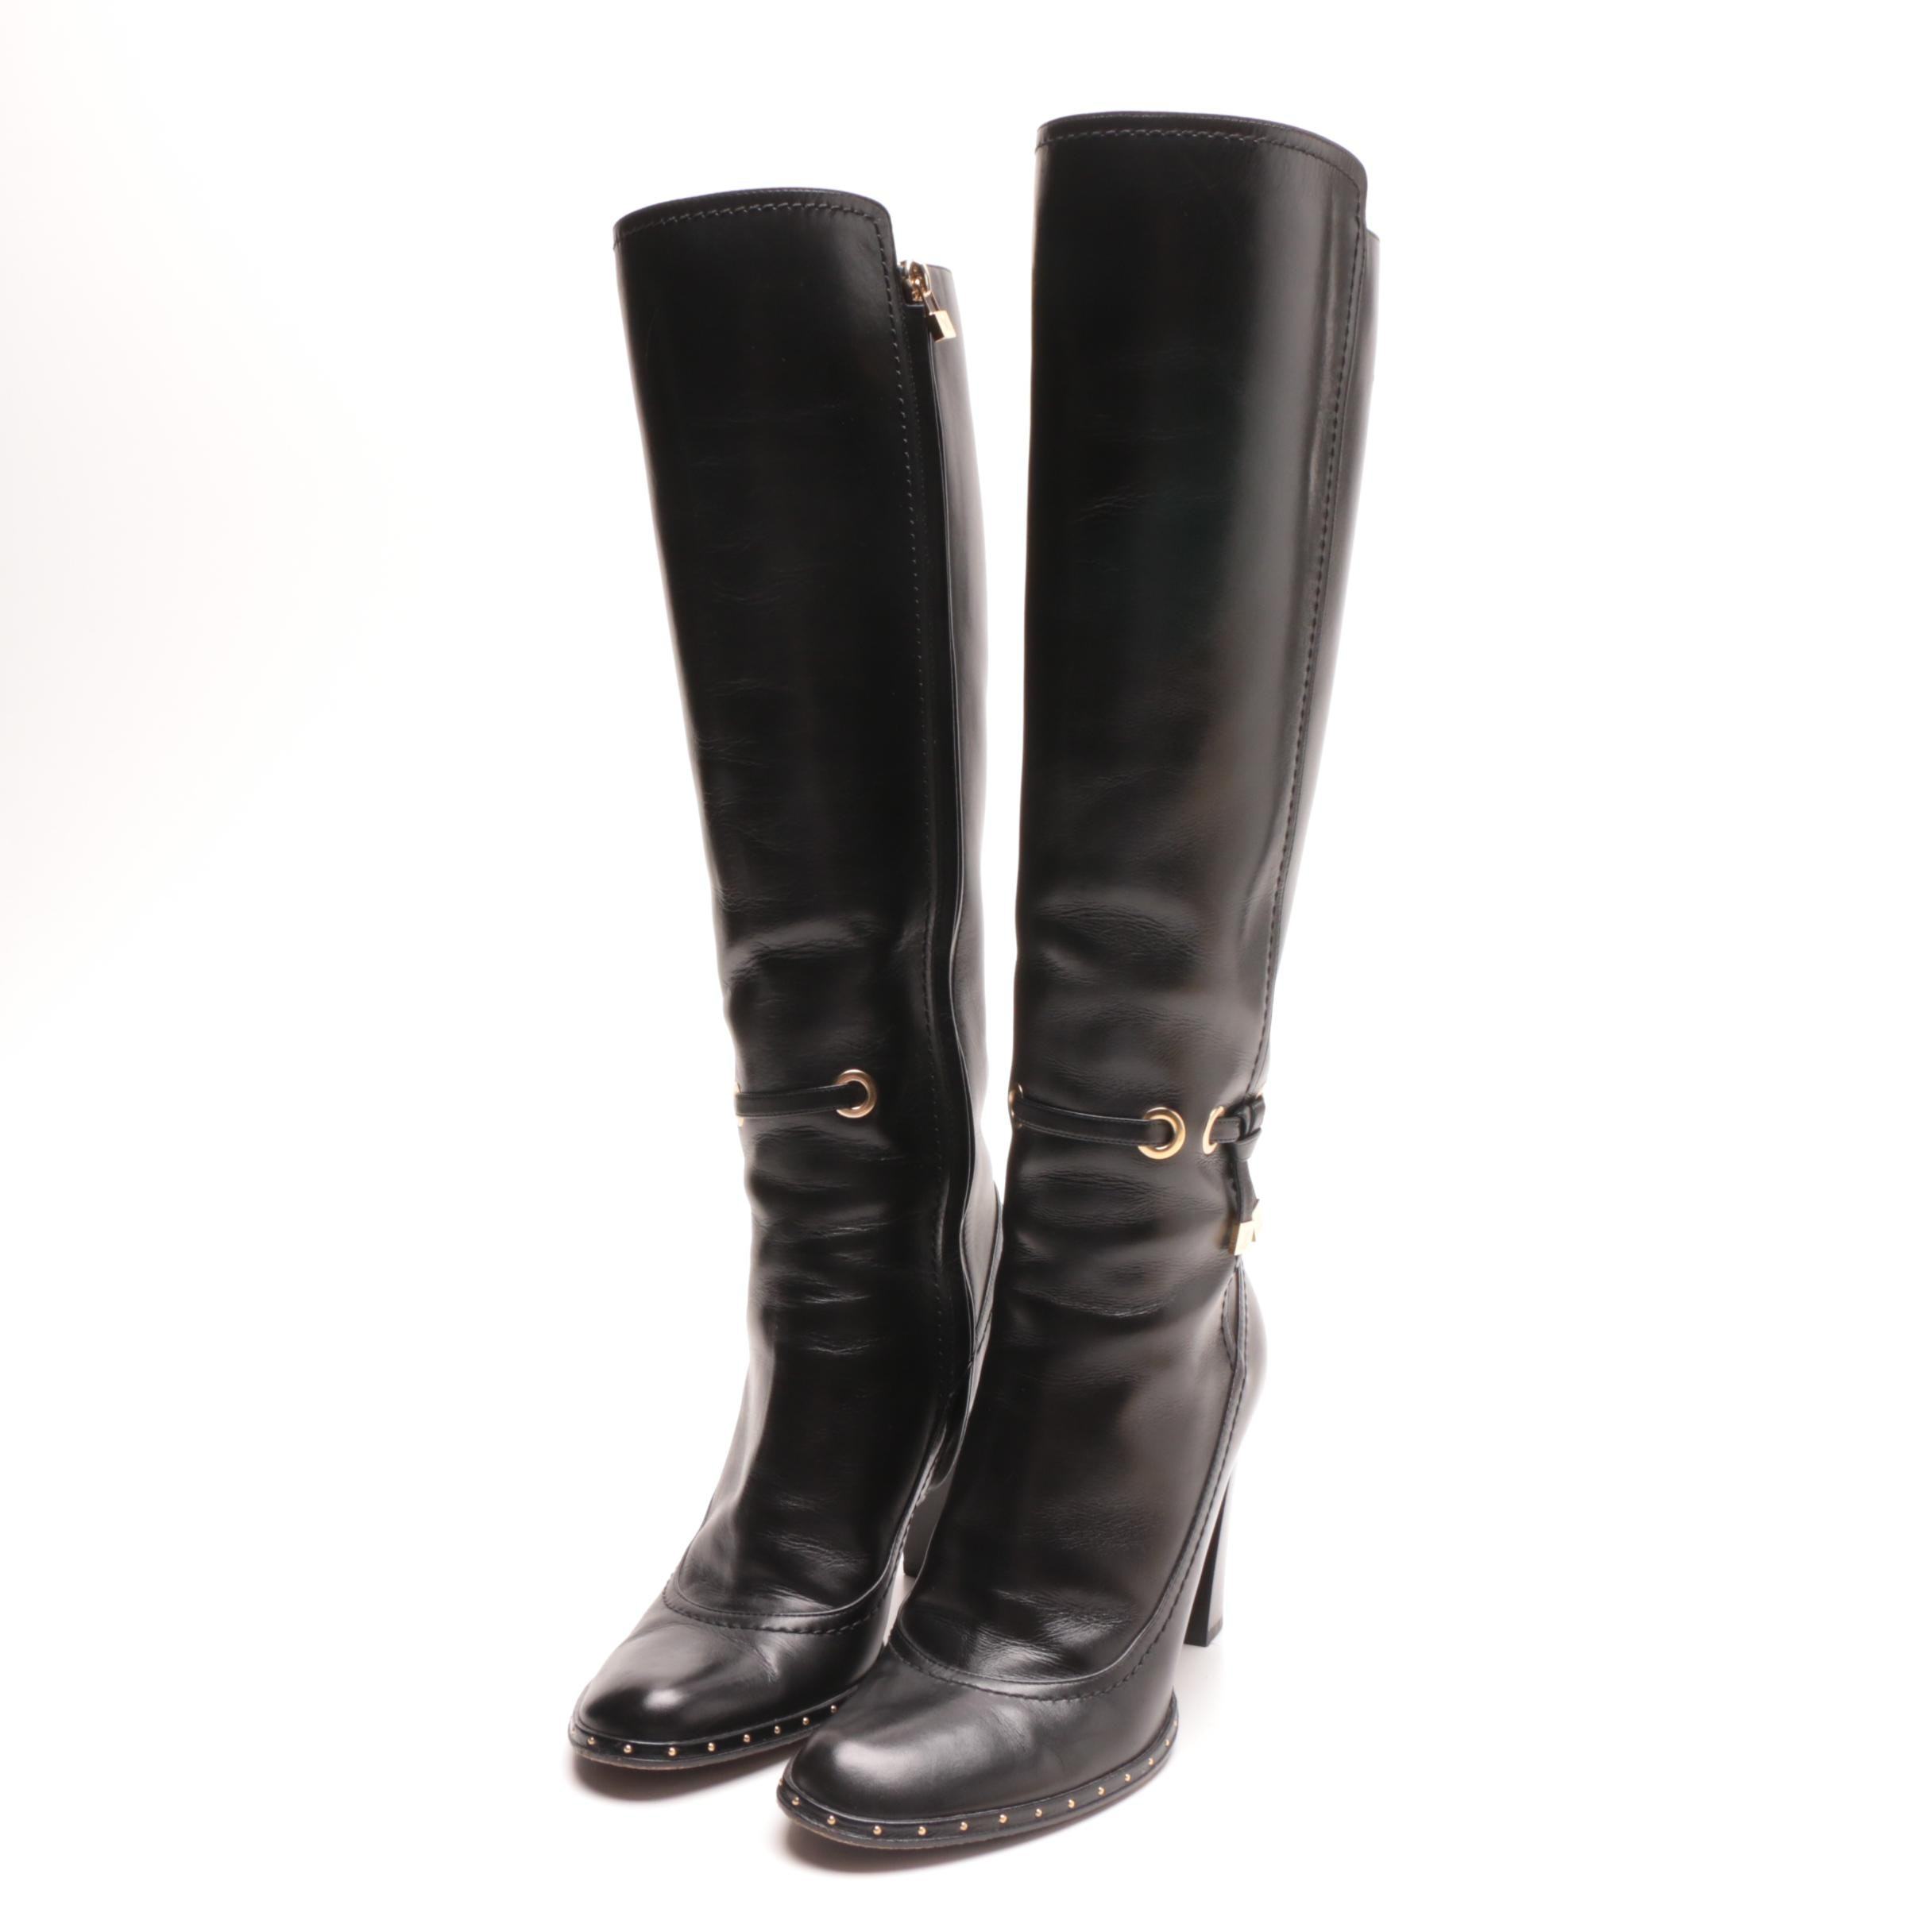 Louis Vuitton of Paris Black Leather Tall Boots